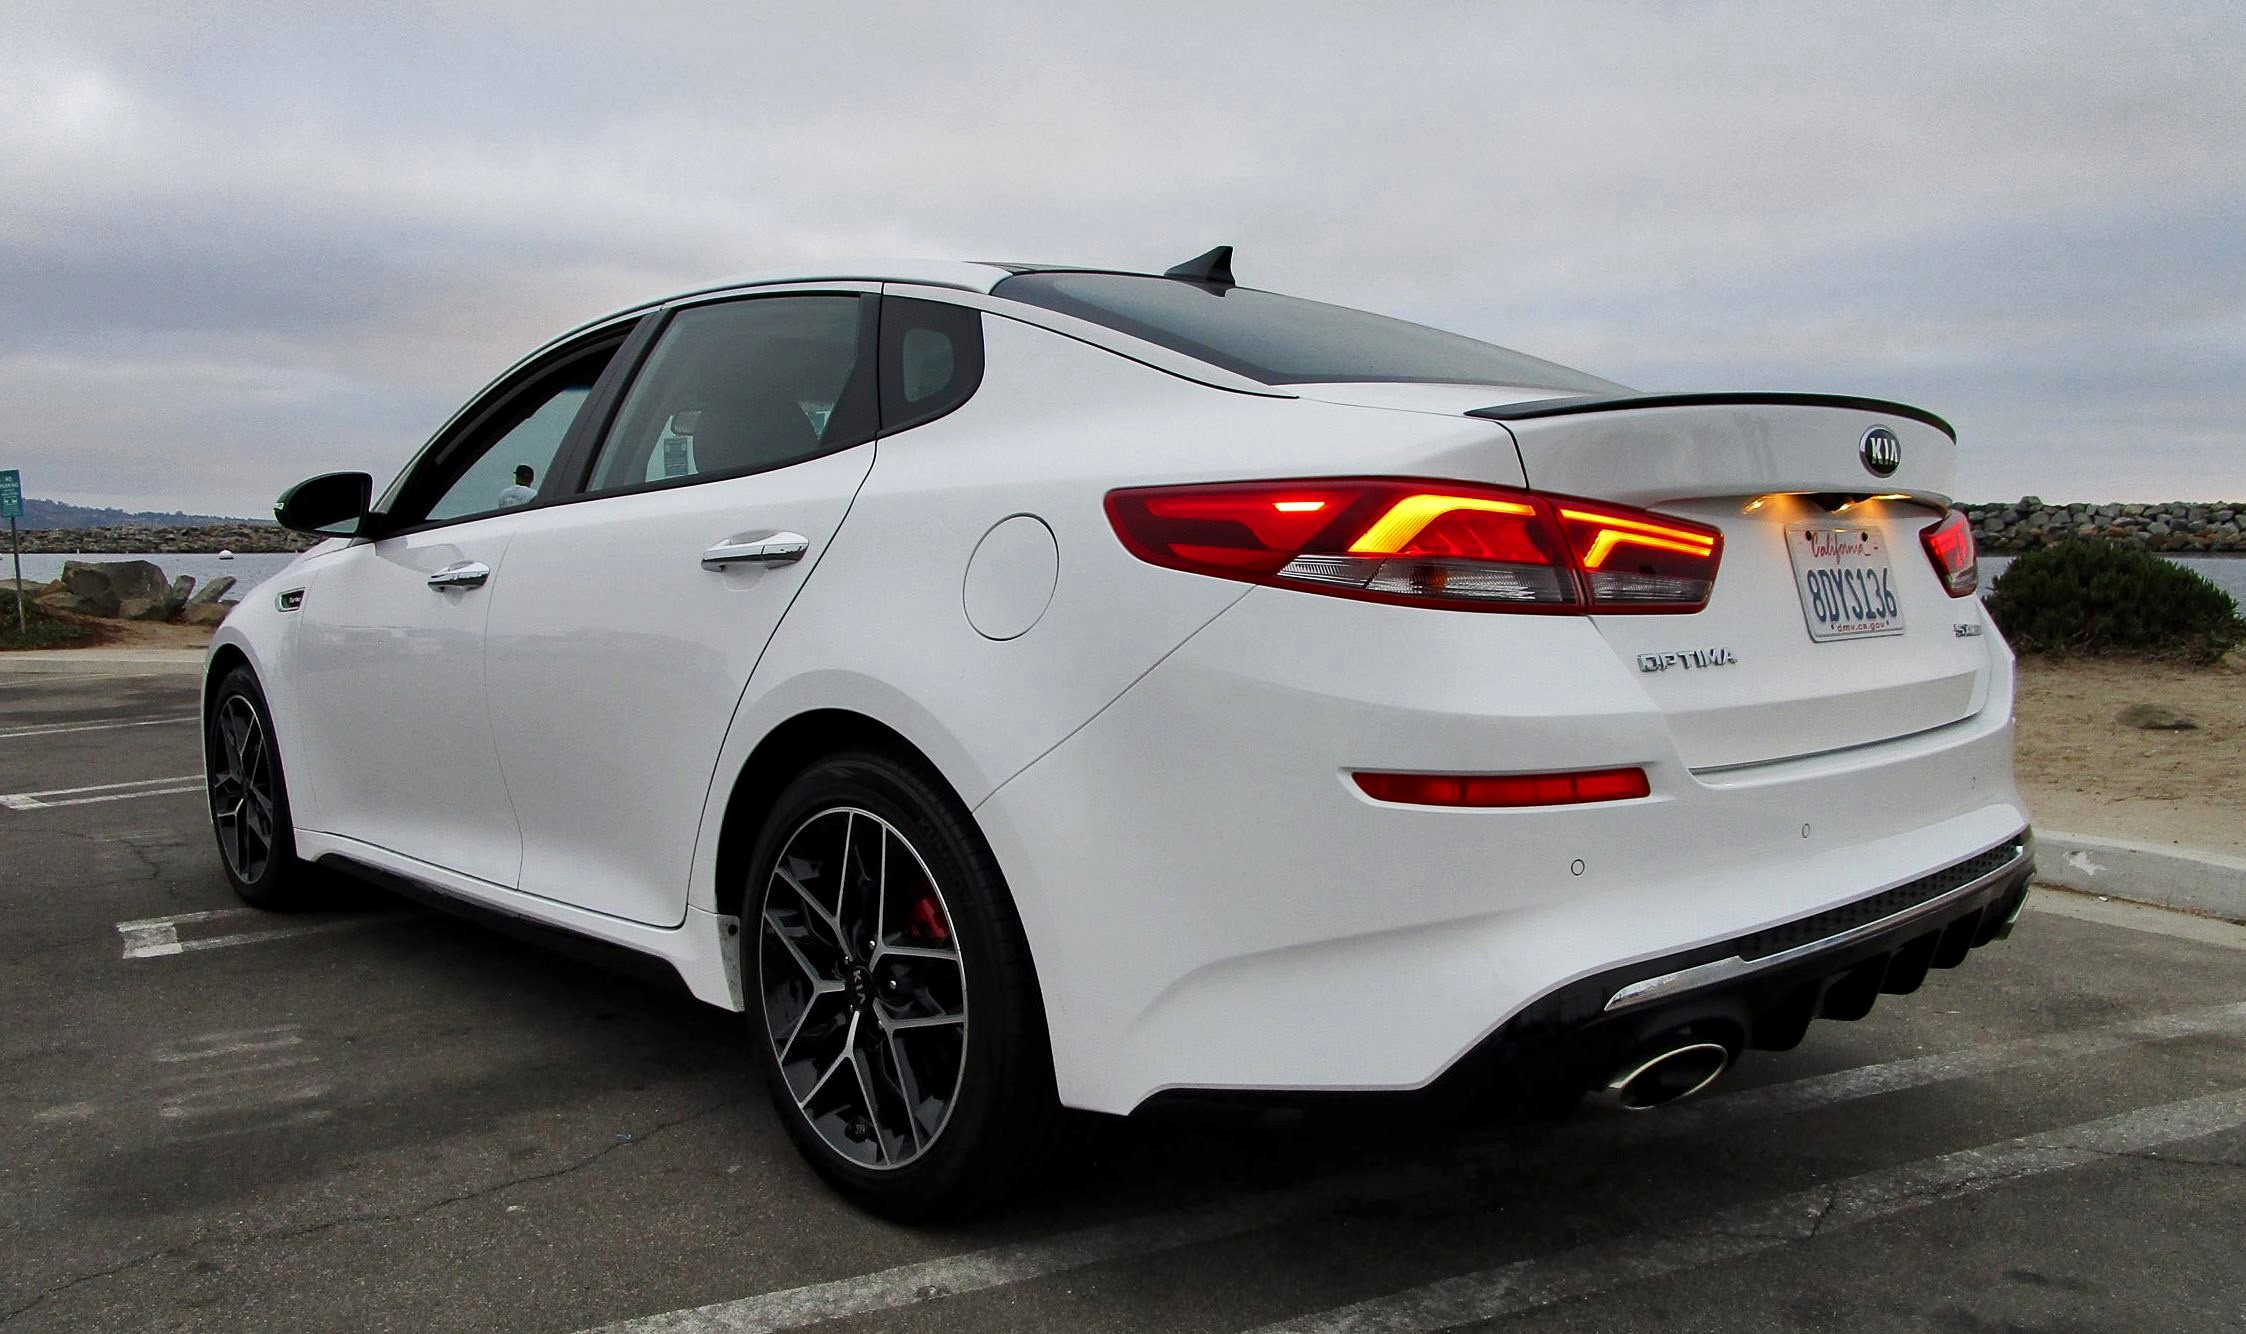 2019 kia optima sx turbo road test review by ben lewis. Black Bedroom Furniture Sets. Home Design Ideas